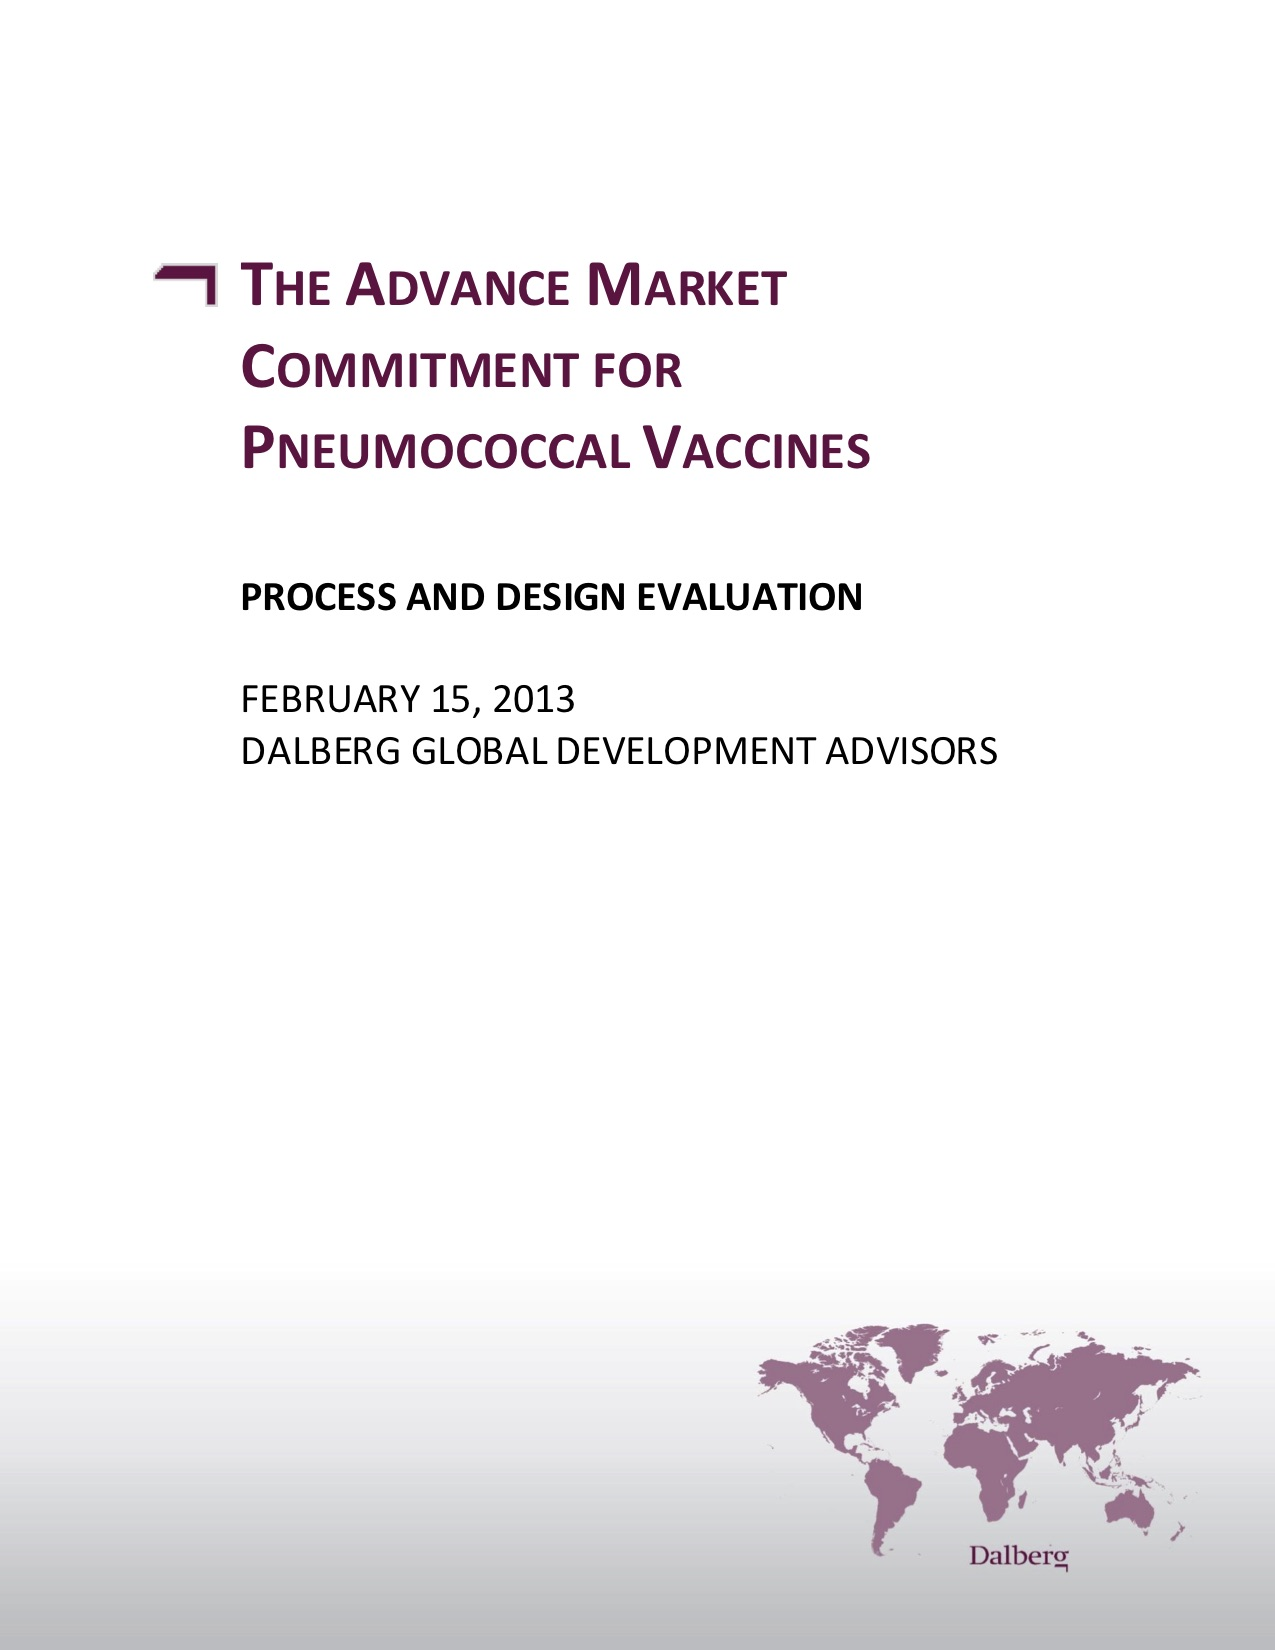 The Advance Market Commitment for Pneumococcal Vaccines: Process and Design Evaluation